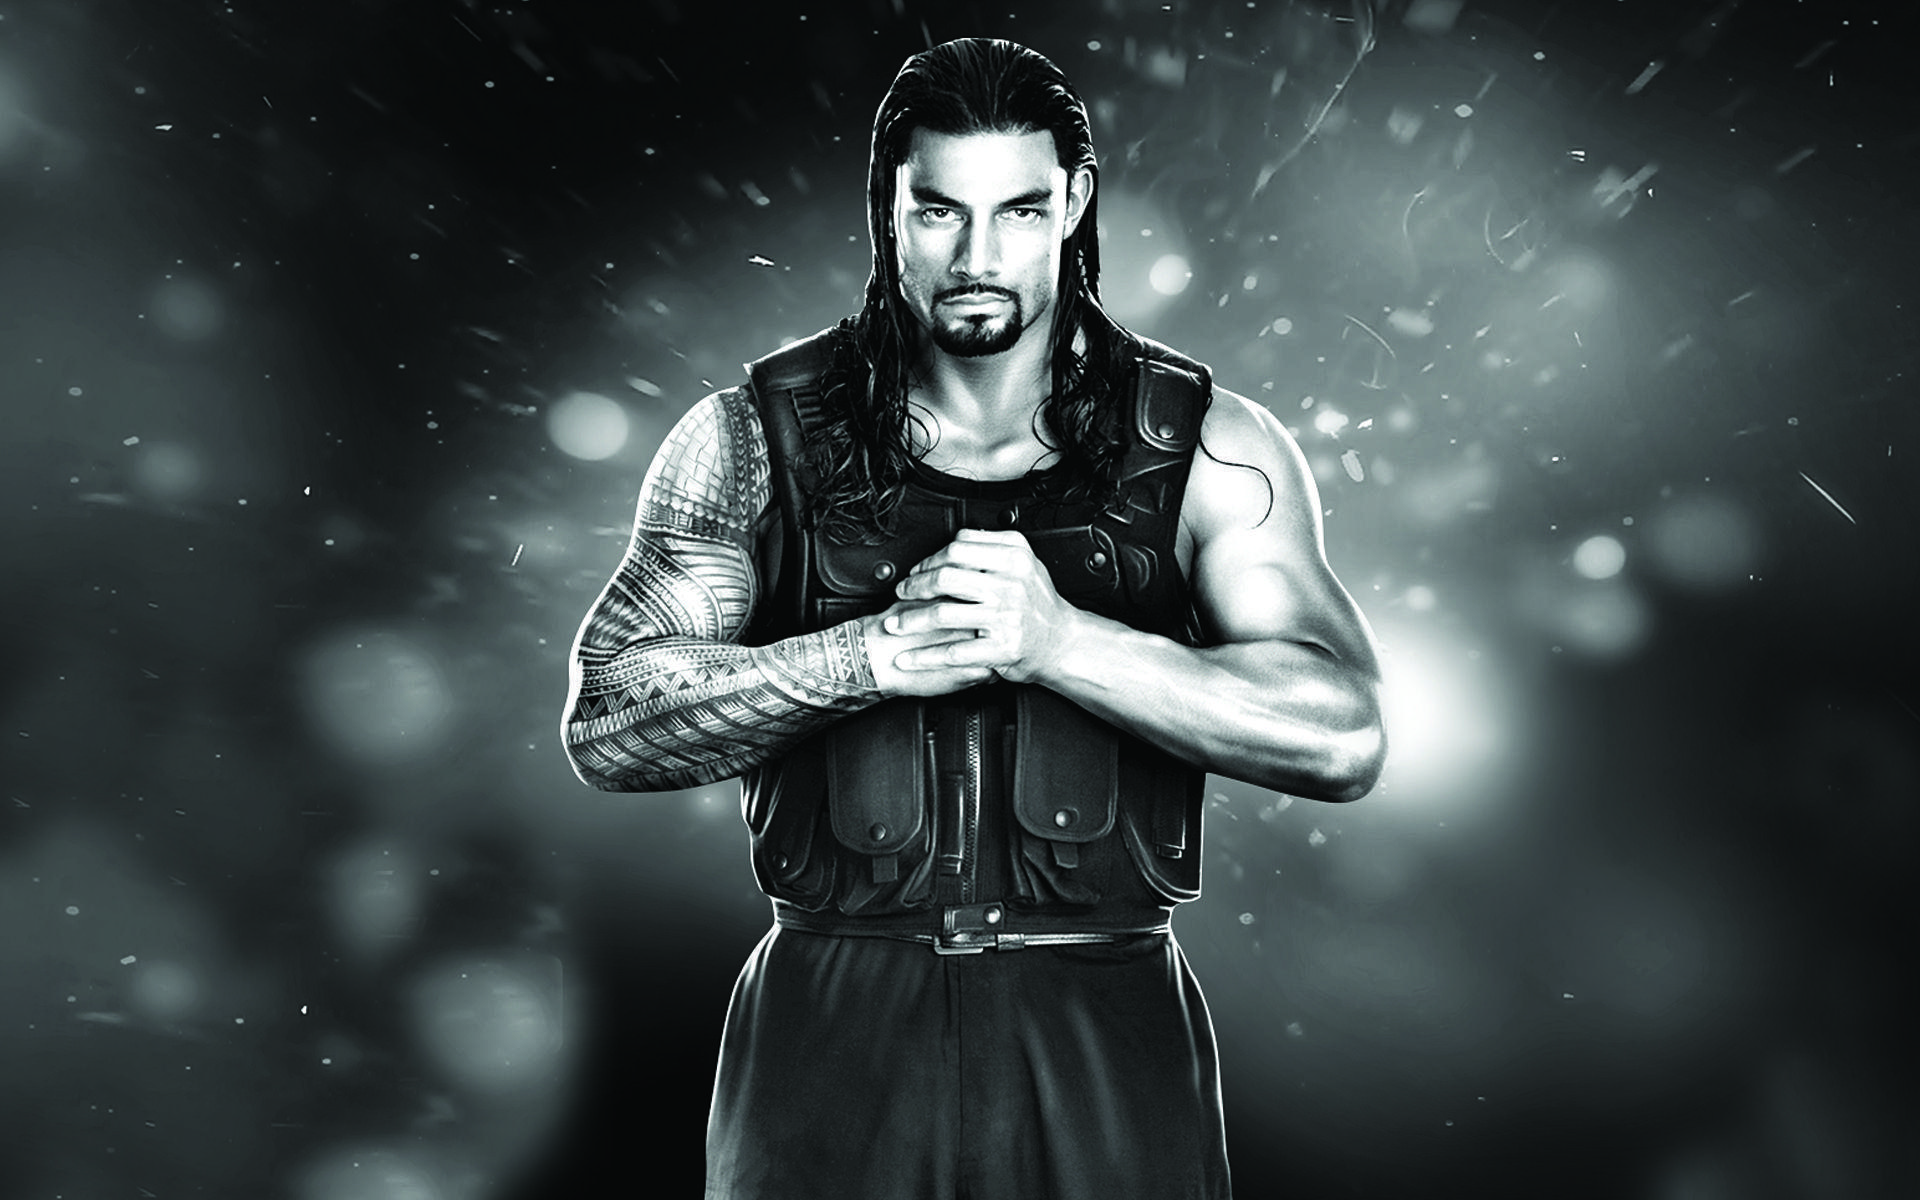 Download WWE Roman Reigns 2016 Wallpapers for Desktop | HD ...